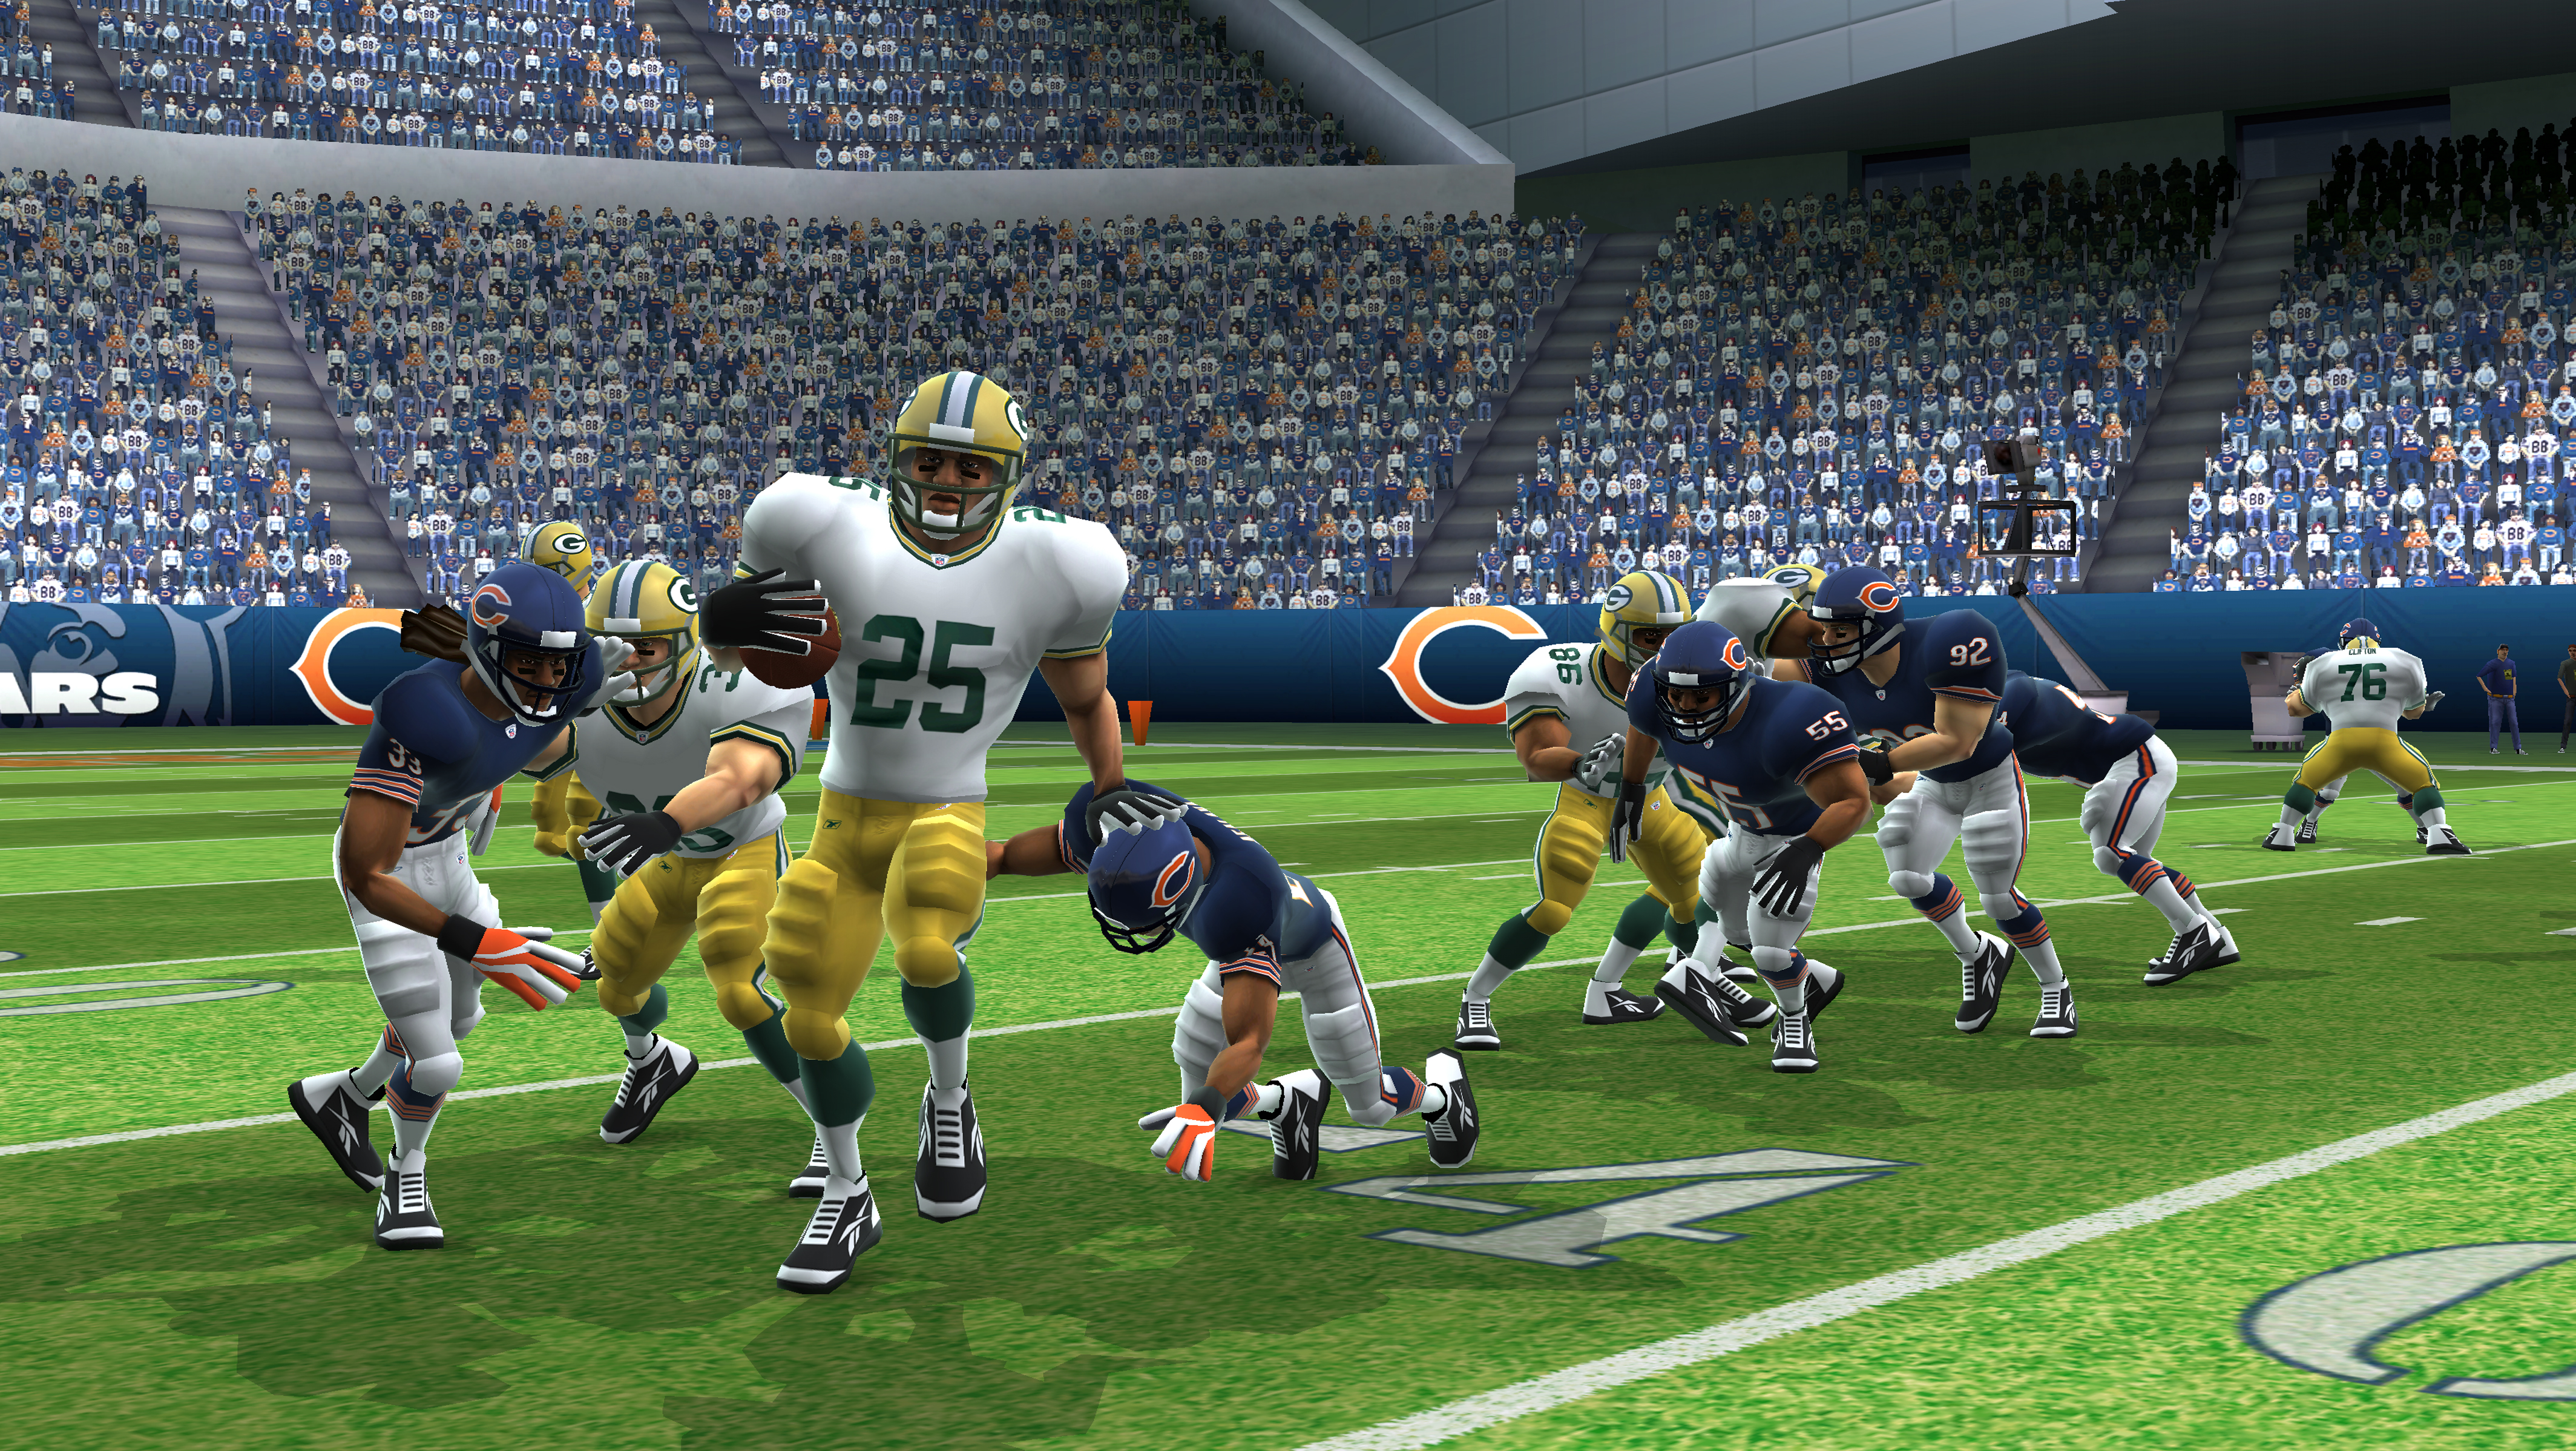 git football game full - HD 4202×2200